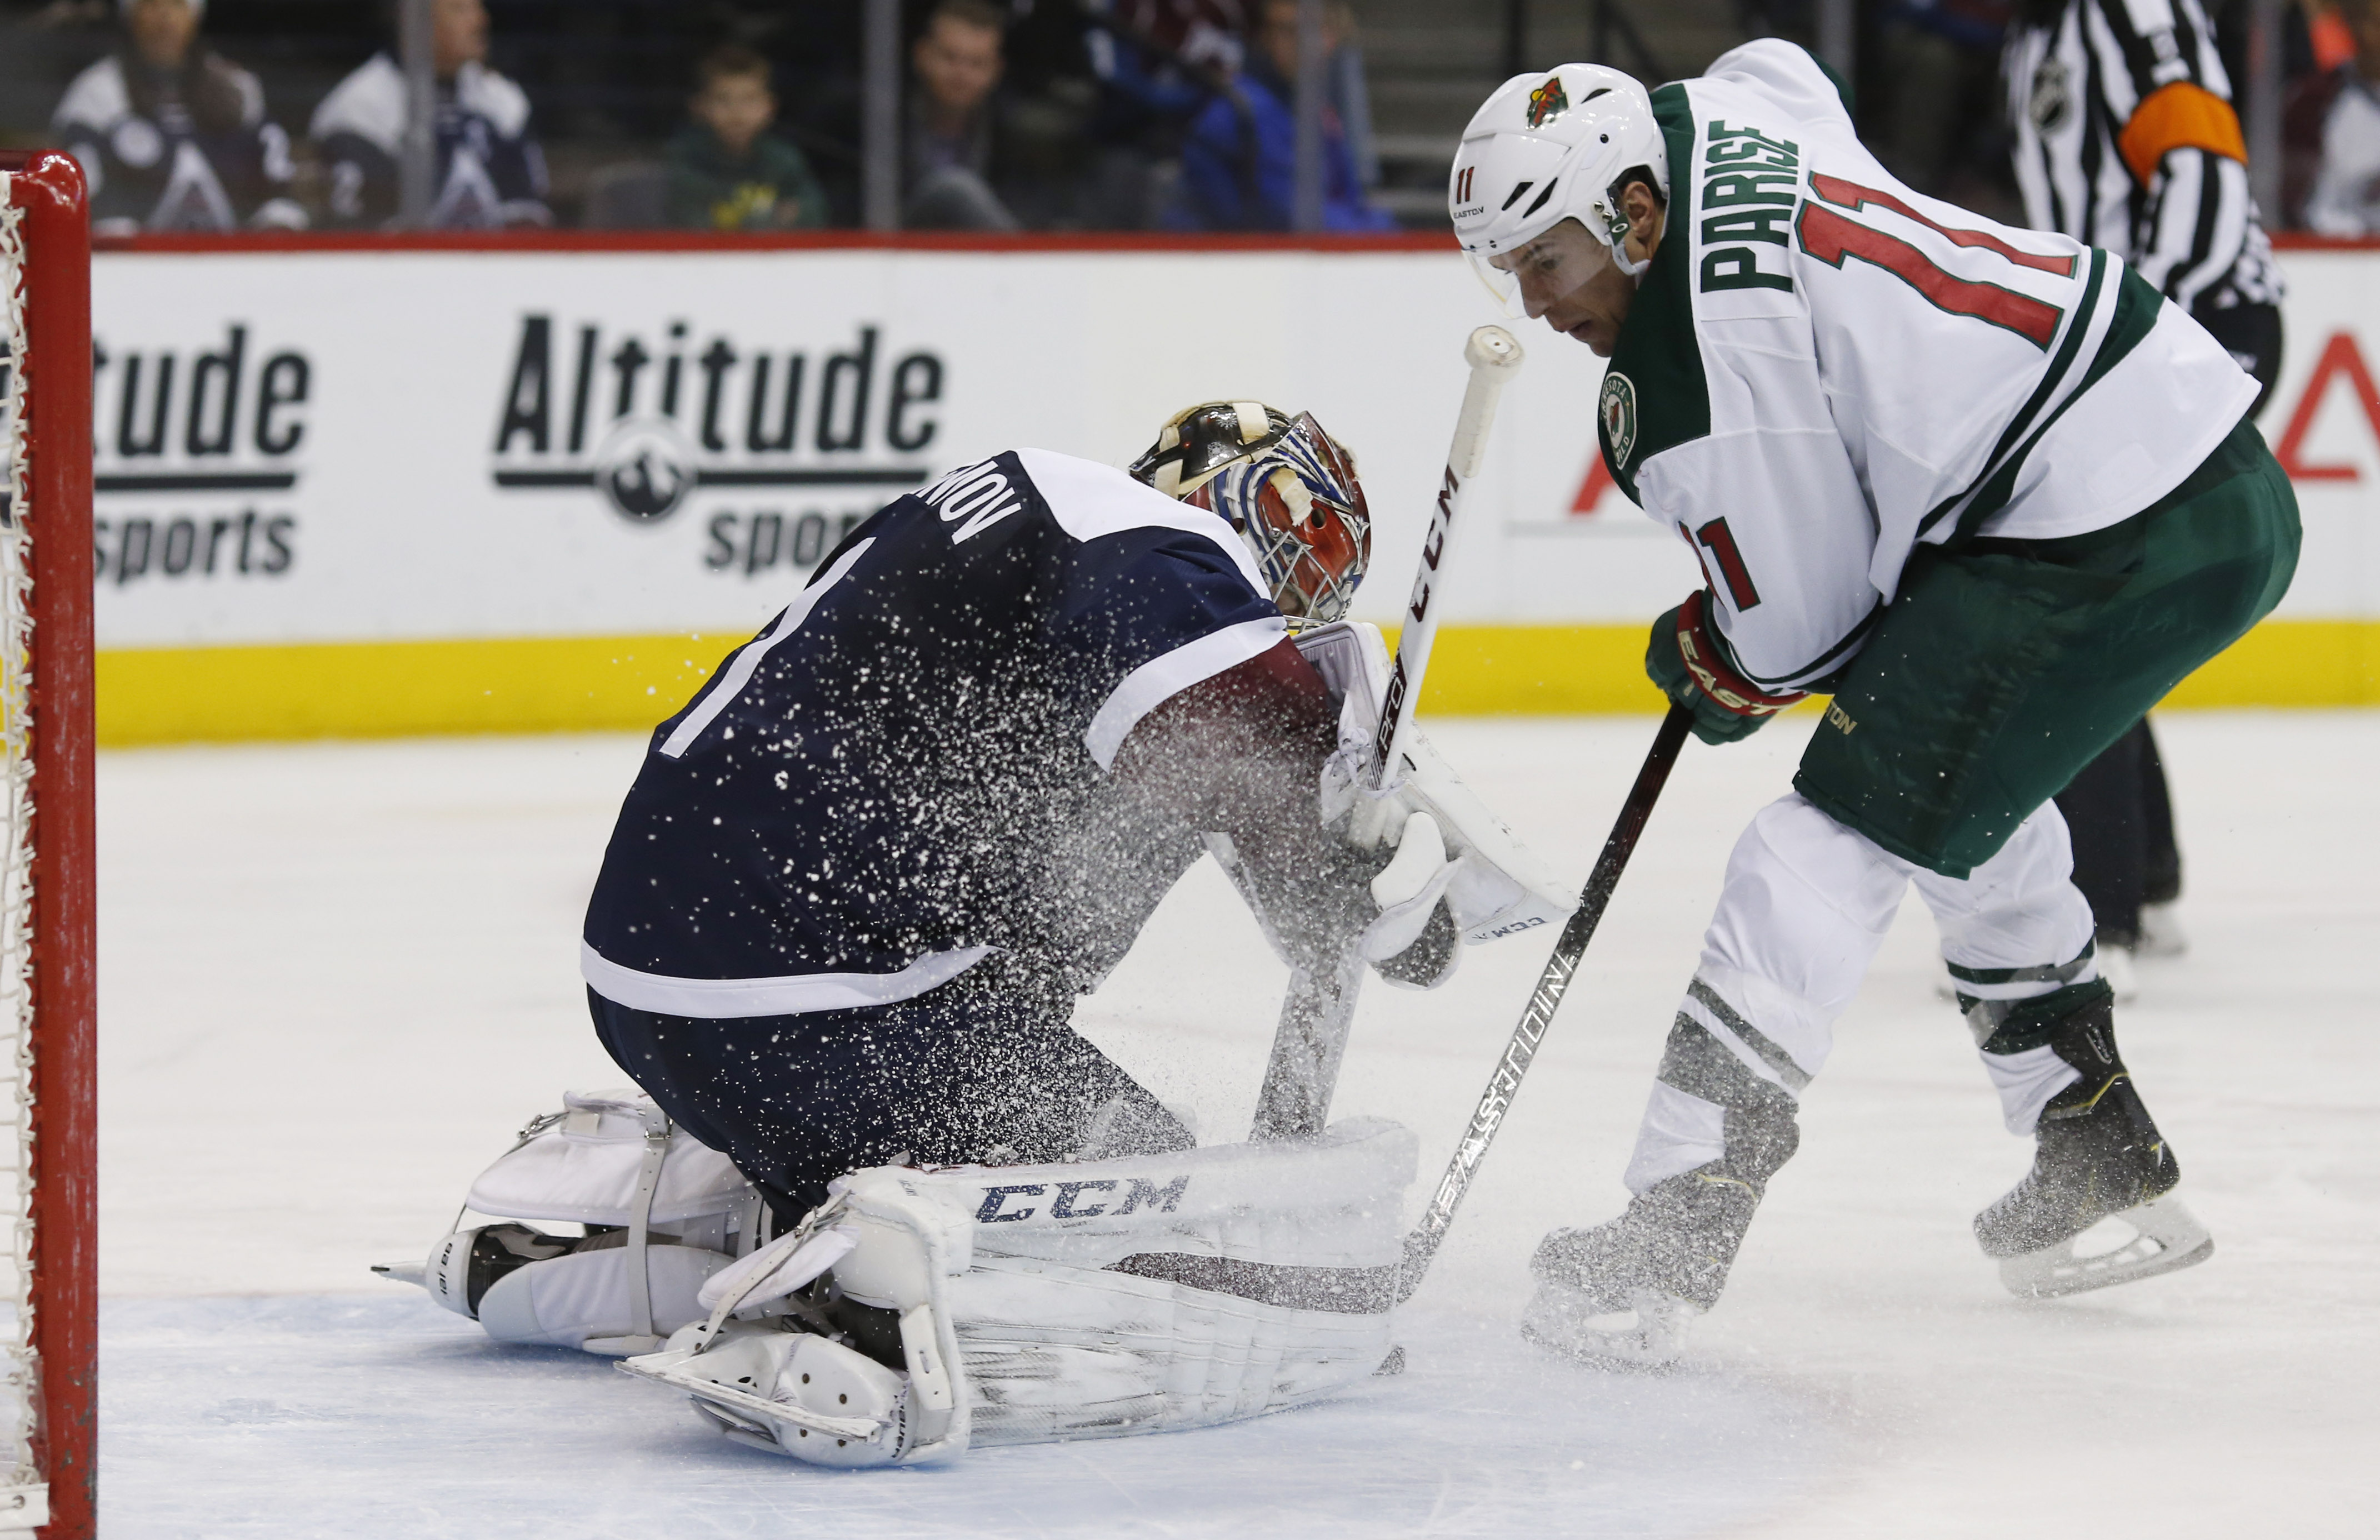 Minnesota Wild left wing Zach Parise, right, directs a shot at Colorado Avalanche goalie Semyon Varlamov, of Russia, in the second period of an NHL hockey game Saturday, March 26, 2016, in Denver. (AP Photo/David Zalubowski)